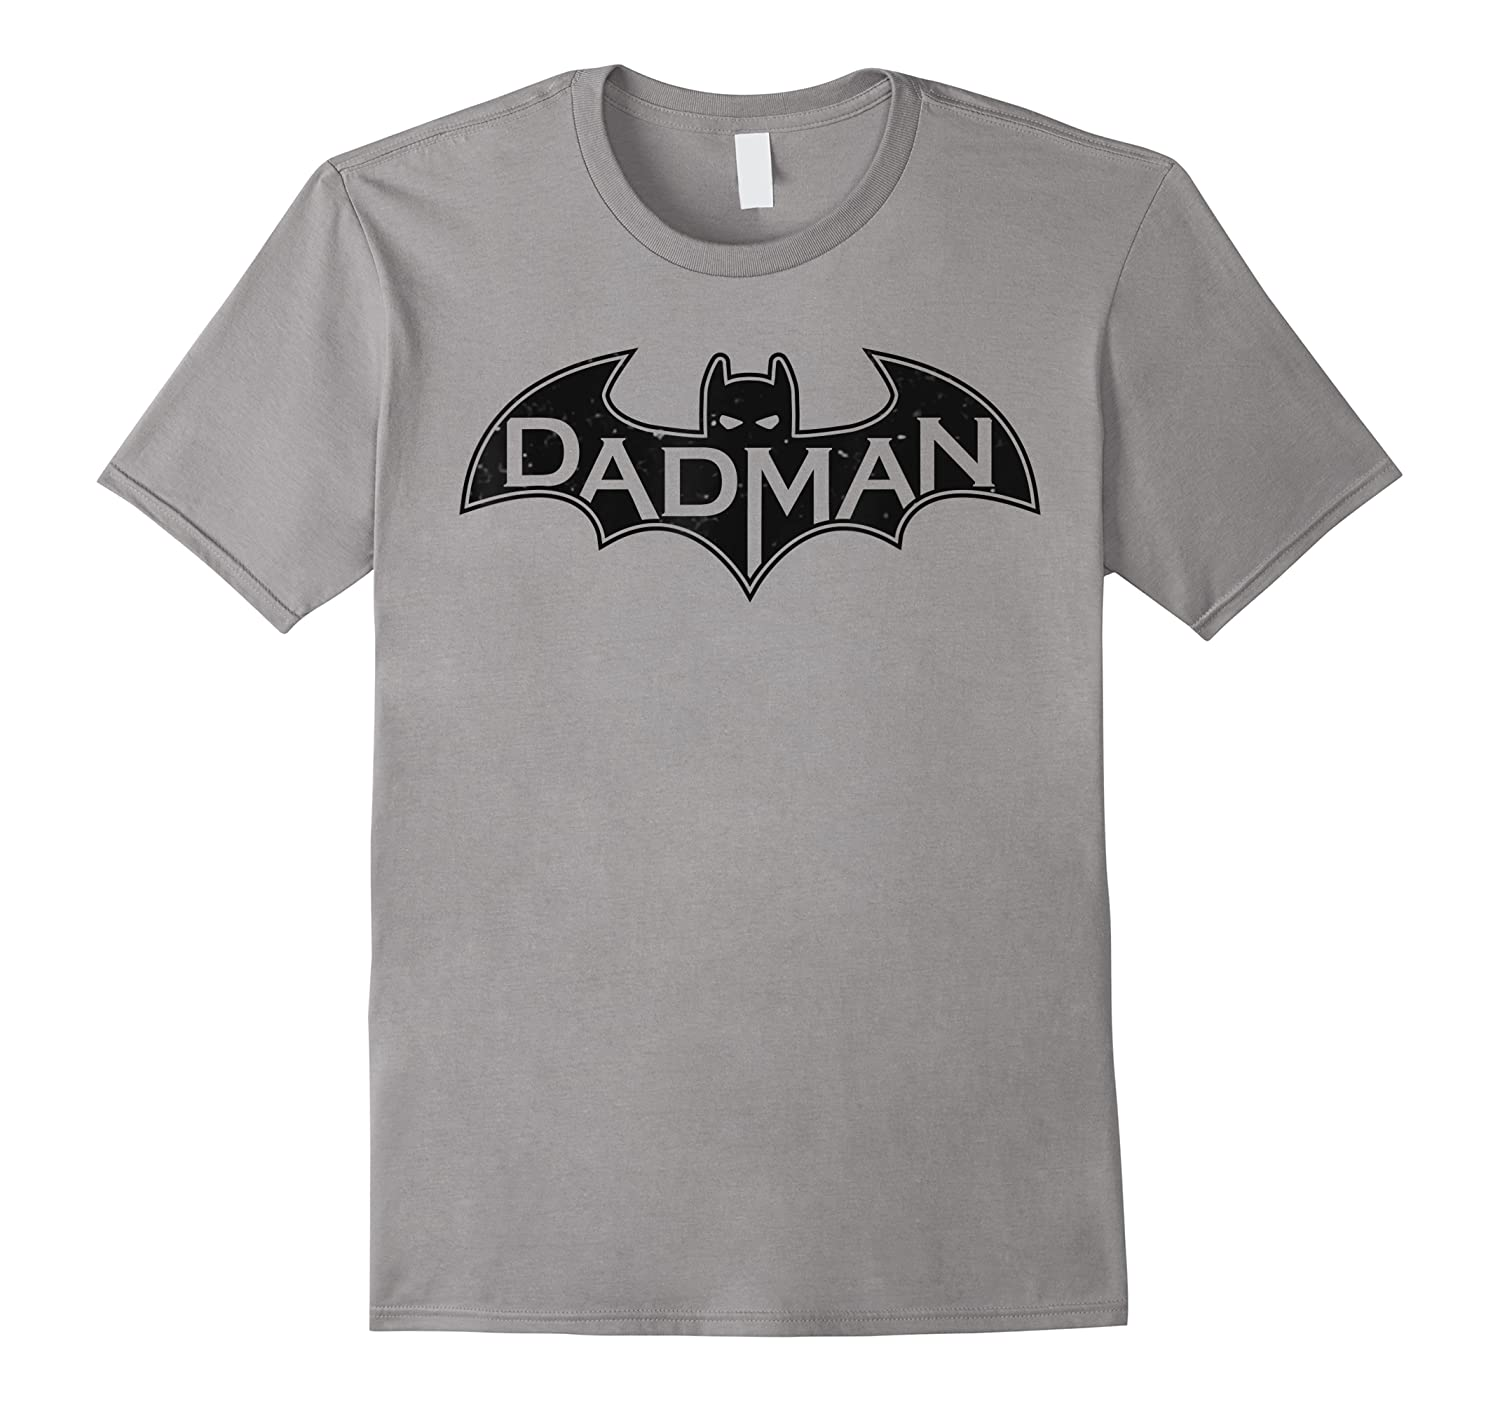 Dadman Proud Of My Daddy Cute Father S Day Shirts